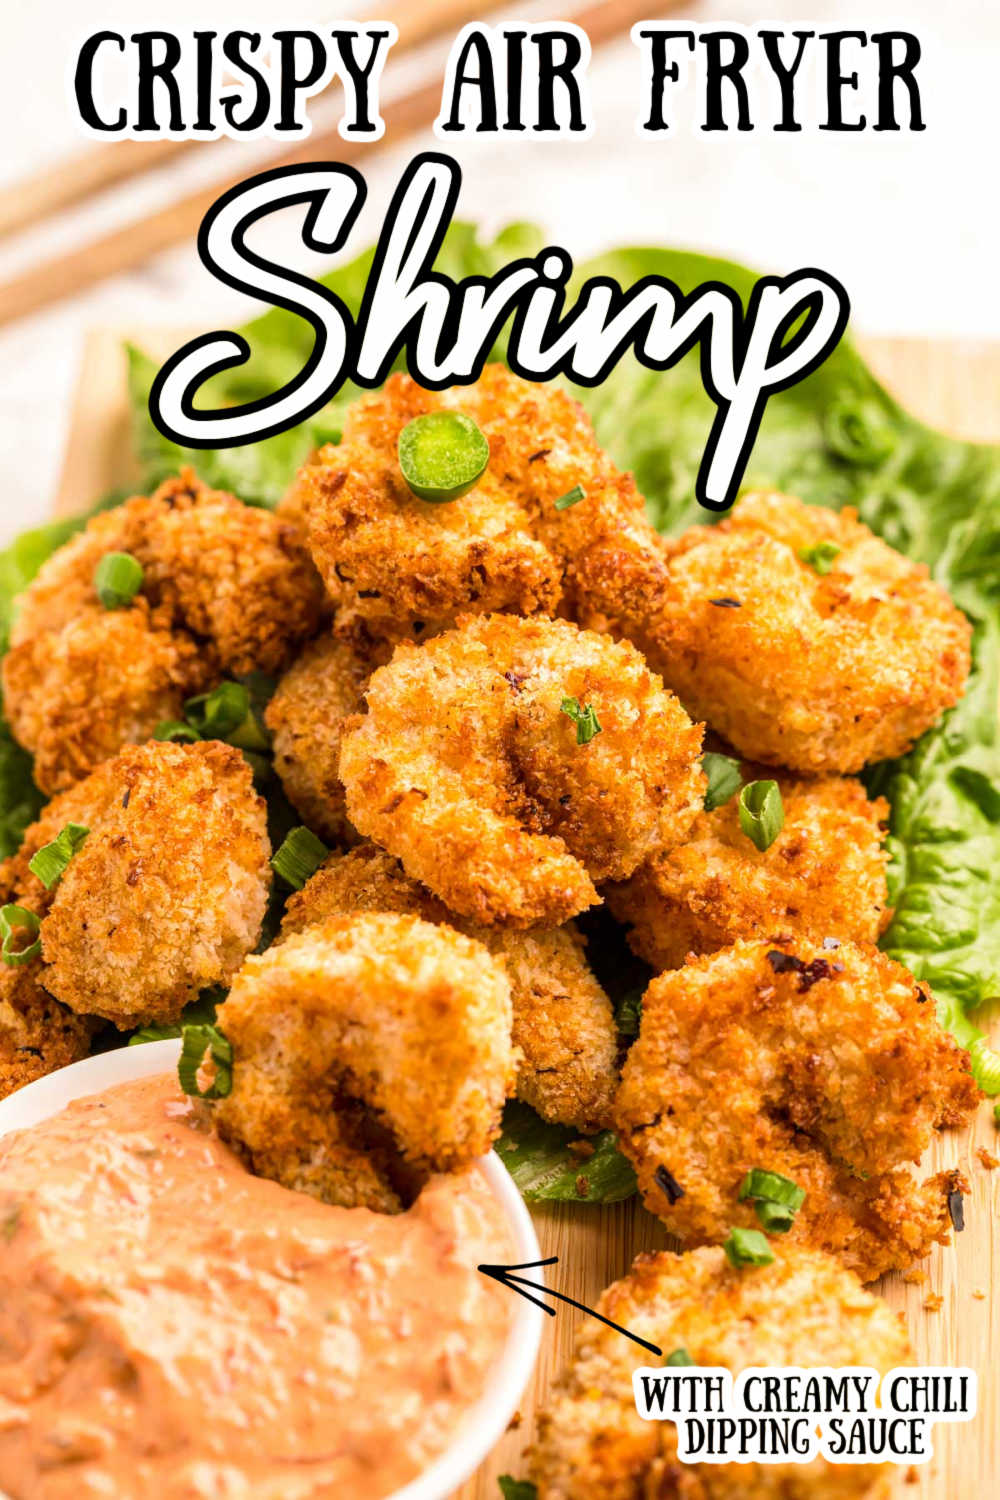 This Crispy Air Fryer Shrimp is golden brown and packed with a kick of heat from the breading to the jalapeno cream chili dipping sauce!  via @sugarandsoulco